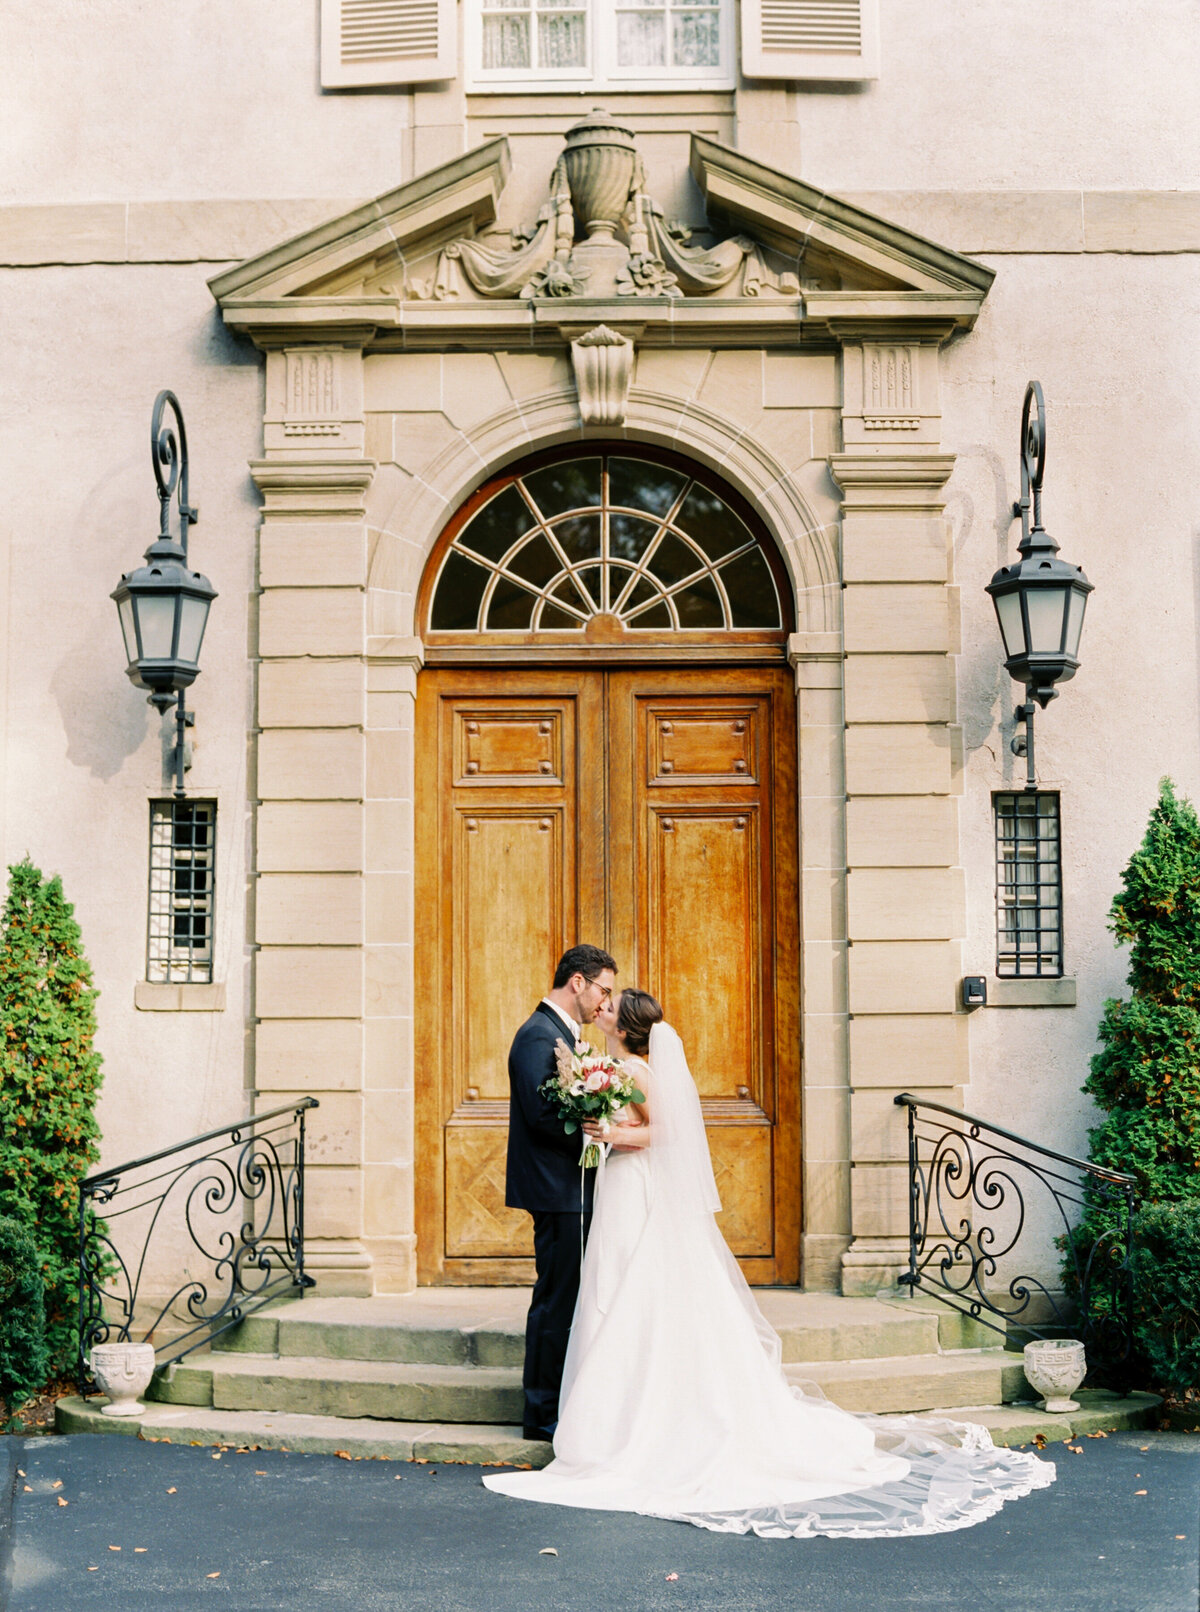 Tiffaney Childs-Newport Wedding Photographer-Lori + Christopher-Glenmanor House Wedding-88